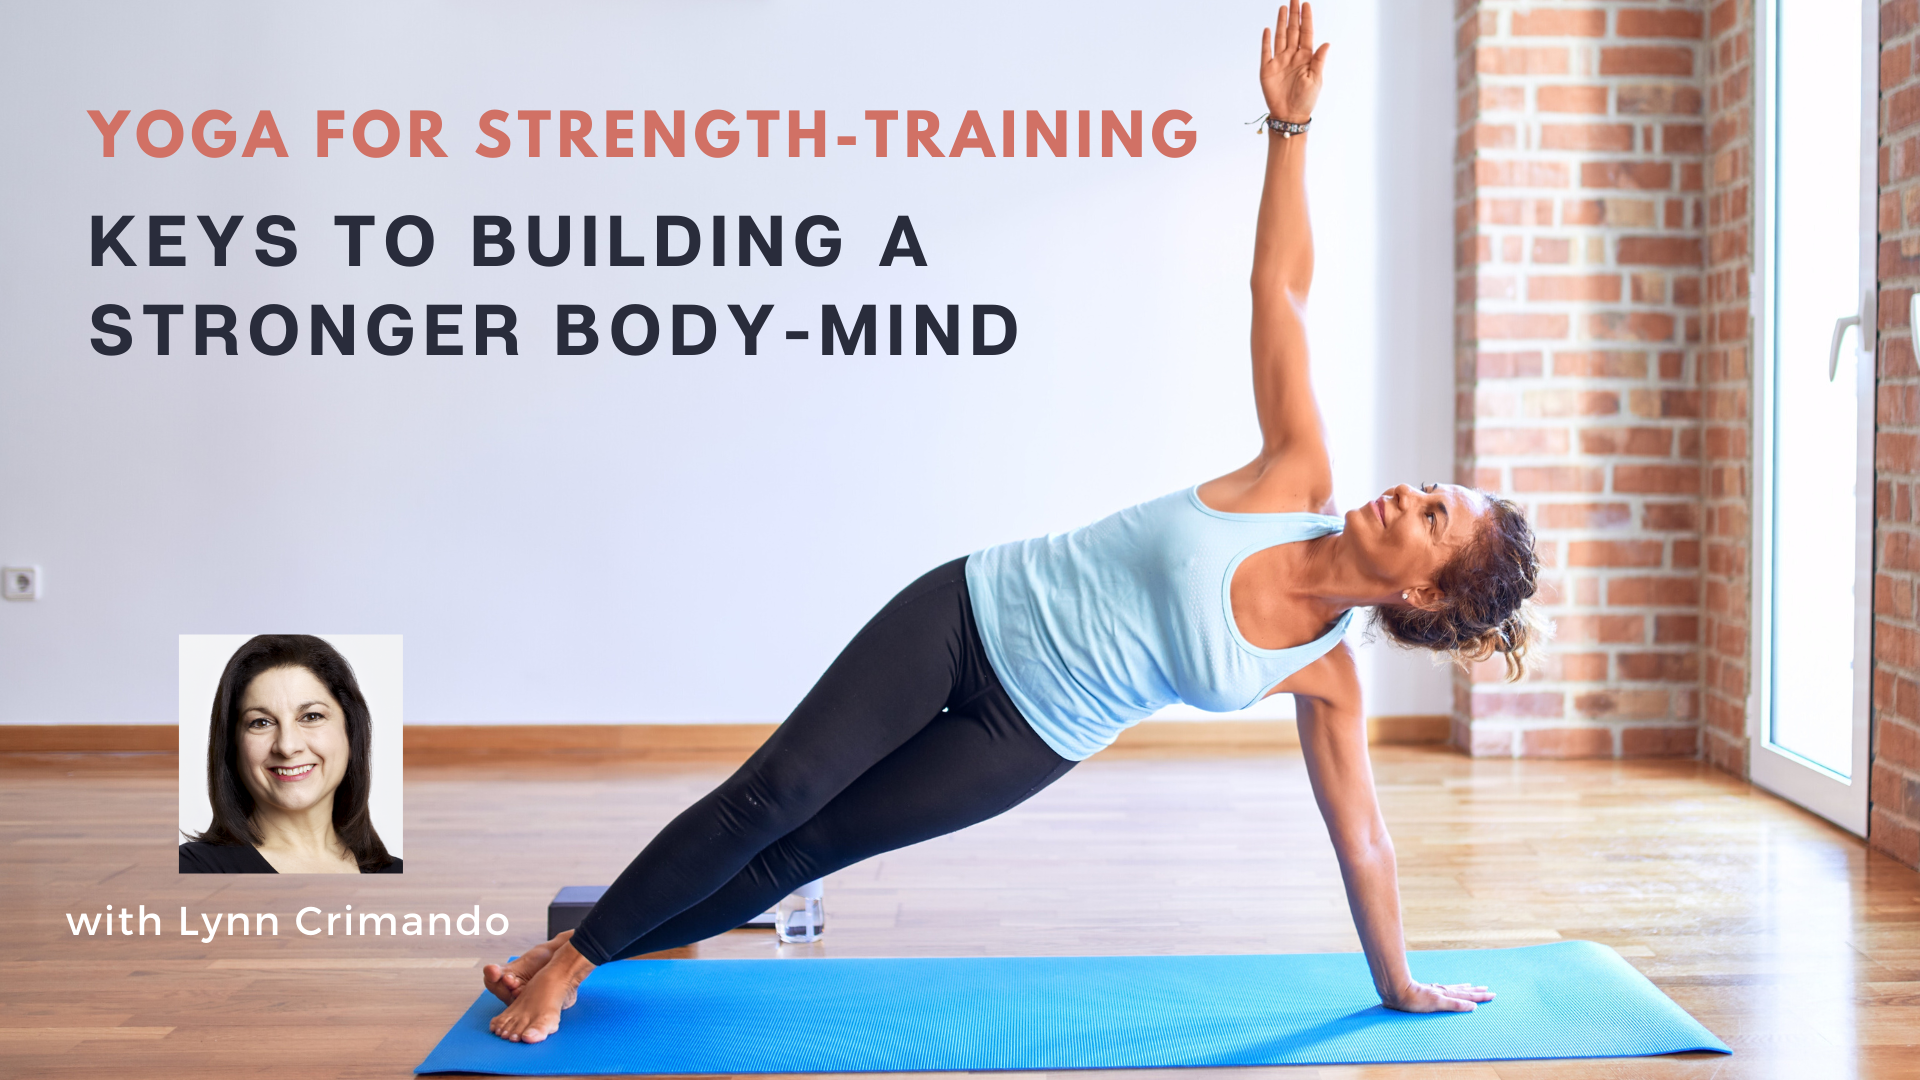 Online yoga course Yoga for Strength-Training with Lynn Crimando